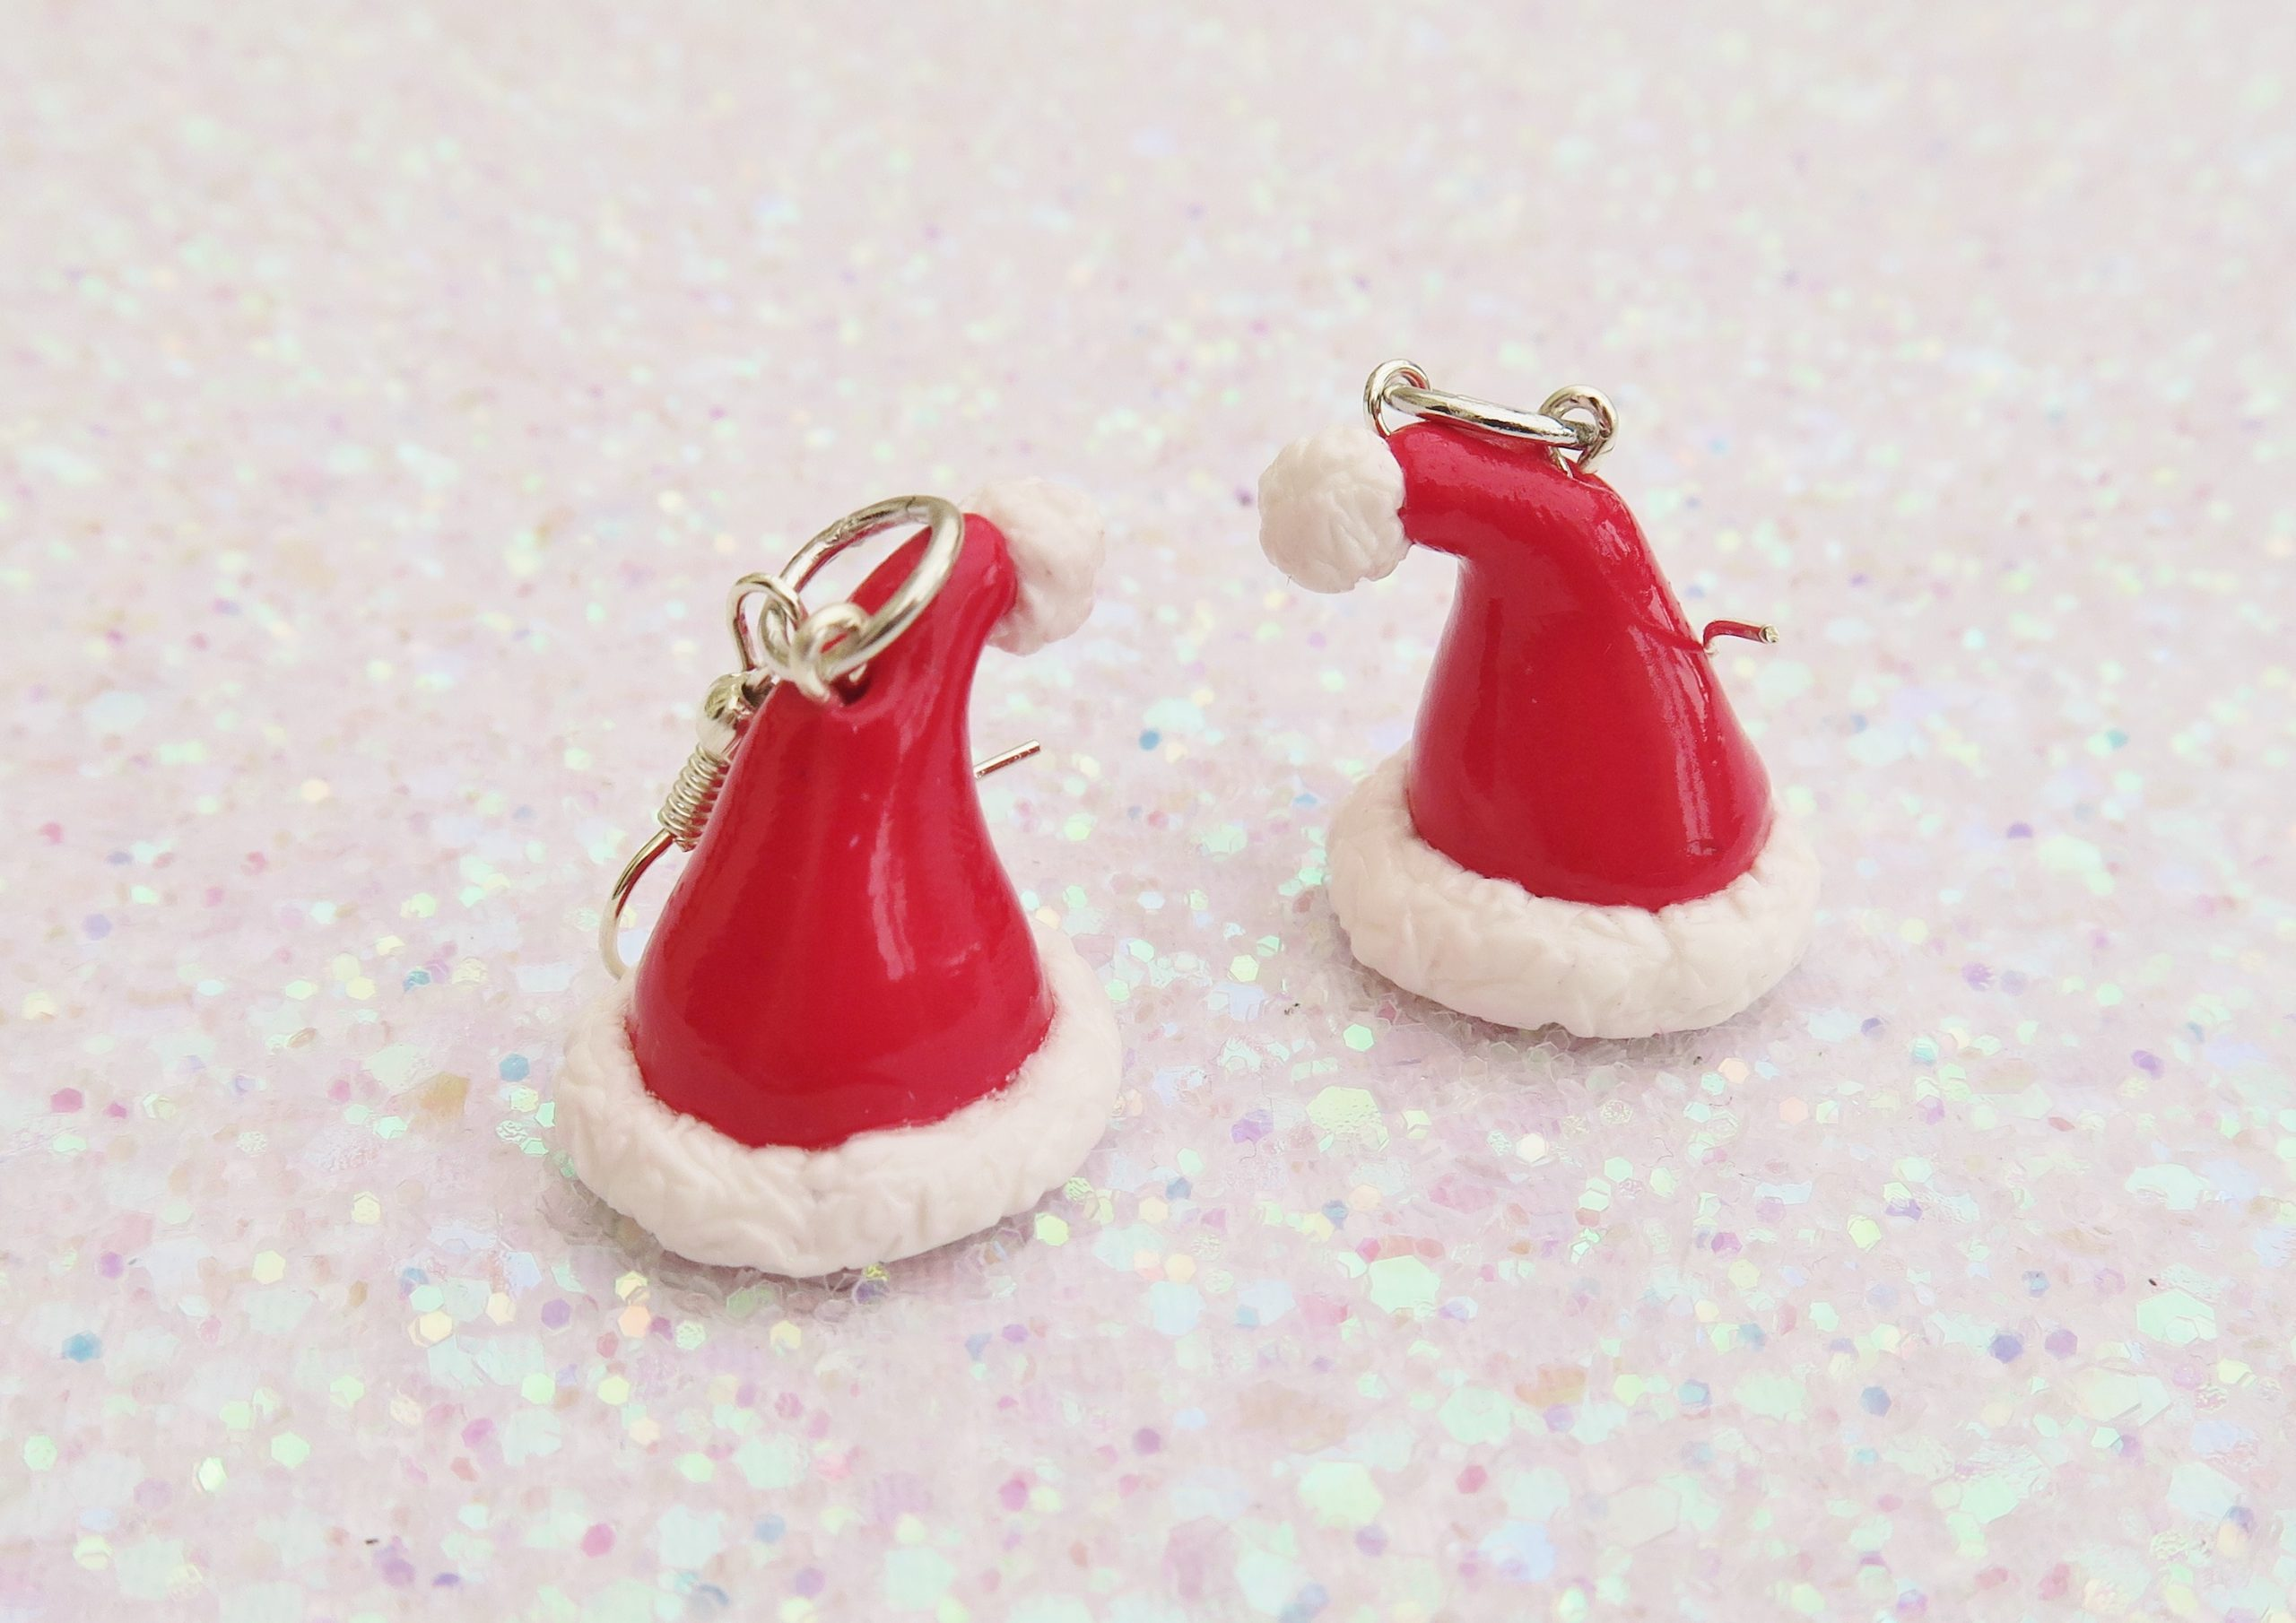 Handmade, Fimo, clay, polymerclay, jewellery, jewelry, novelty, Christmas, festive, cute, craft, gift, present, for her, red, Santa, Father Christmas, hat statement, earrings,